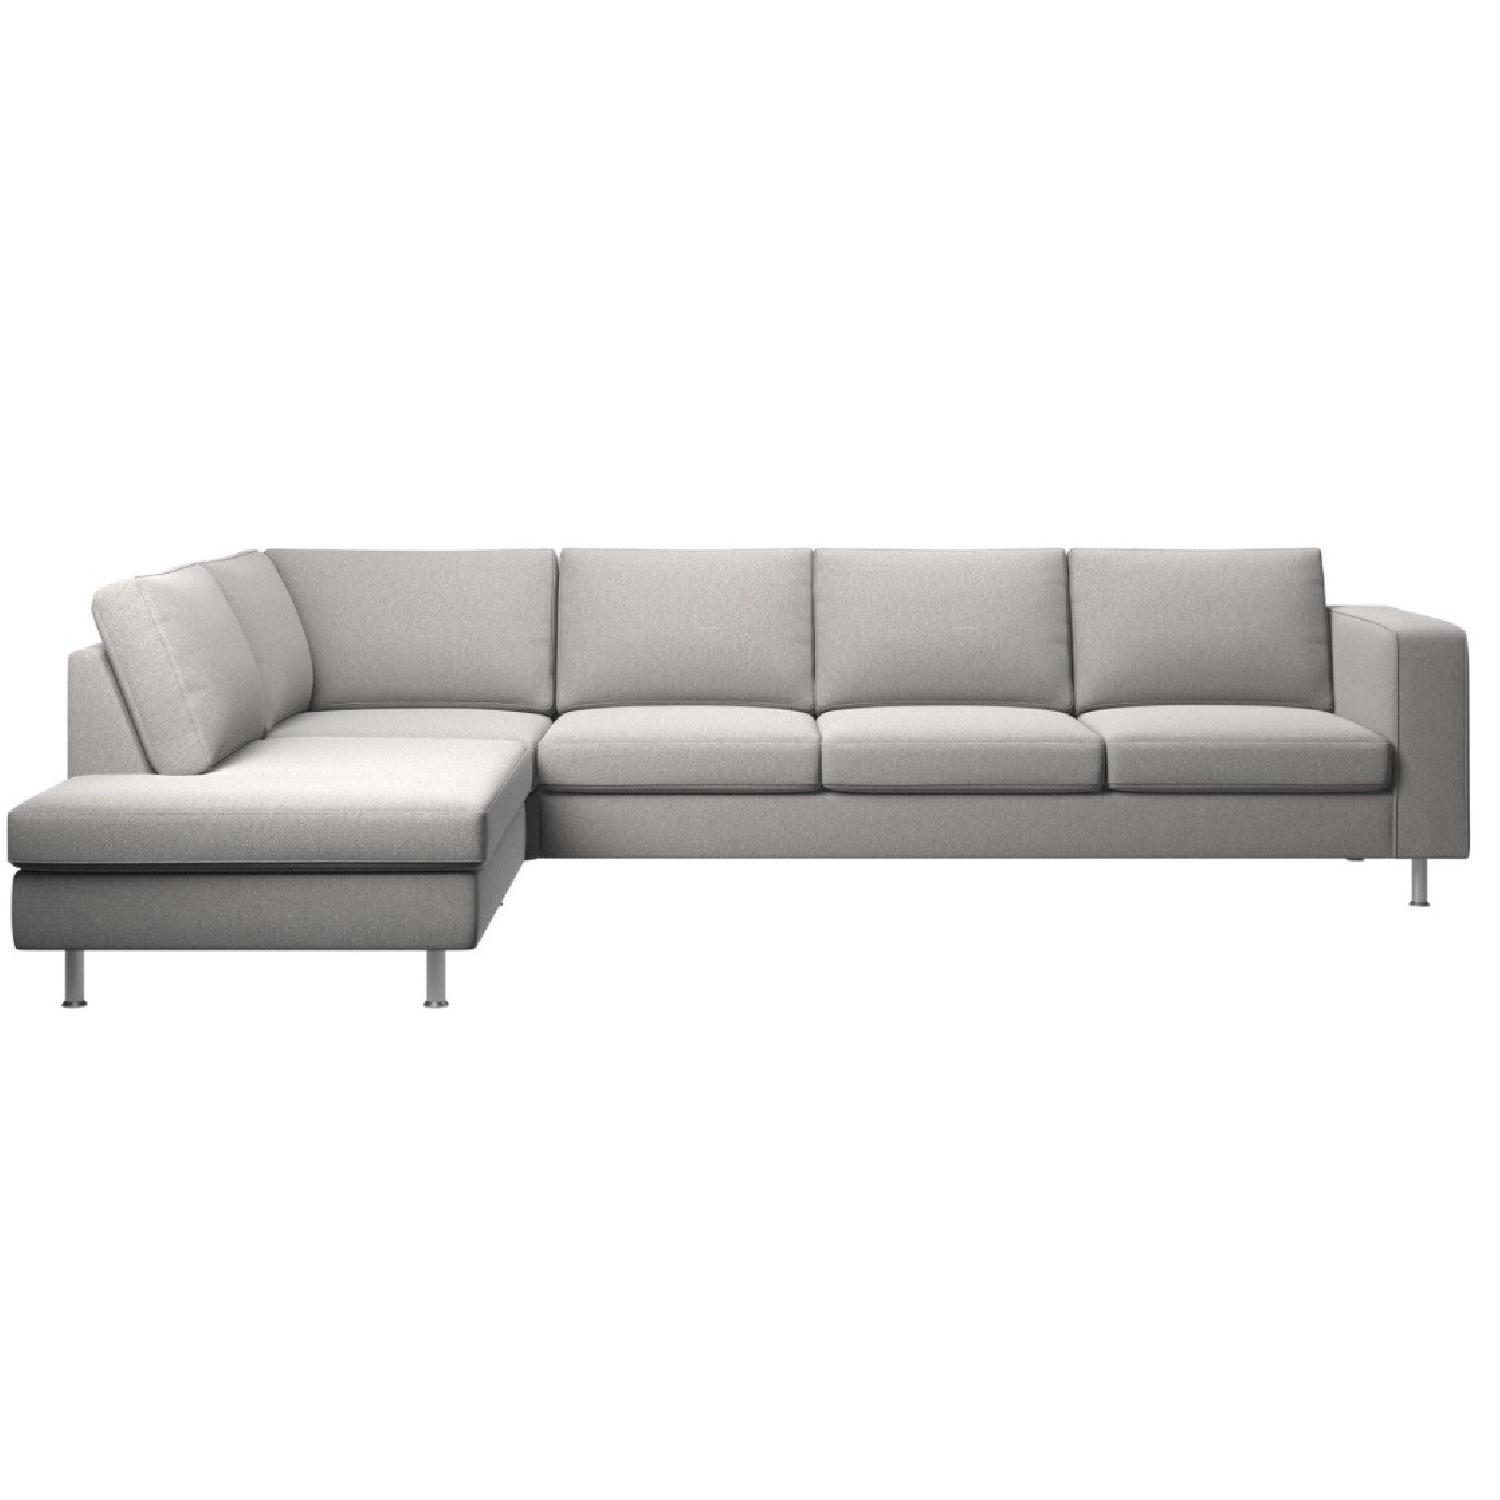 boconcept light gray l shaped sectional sofa aptdeco. Black Bedroom Furniture Sets. Home Design Ideas